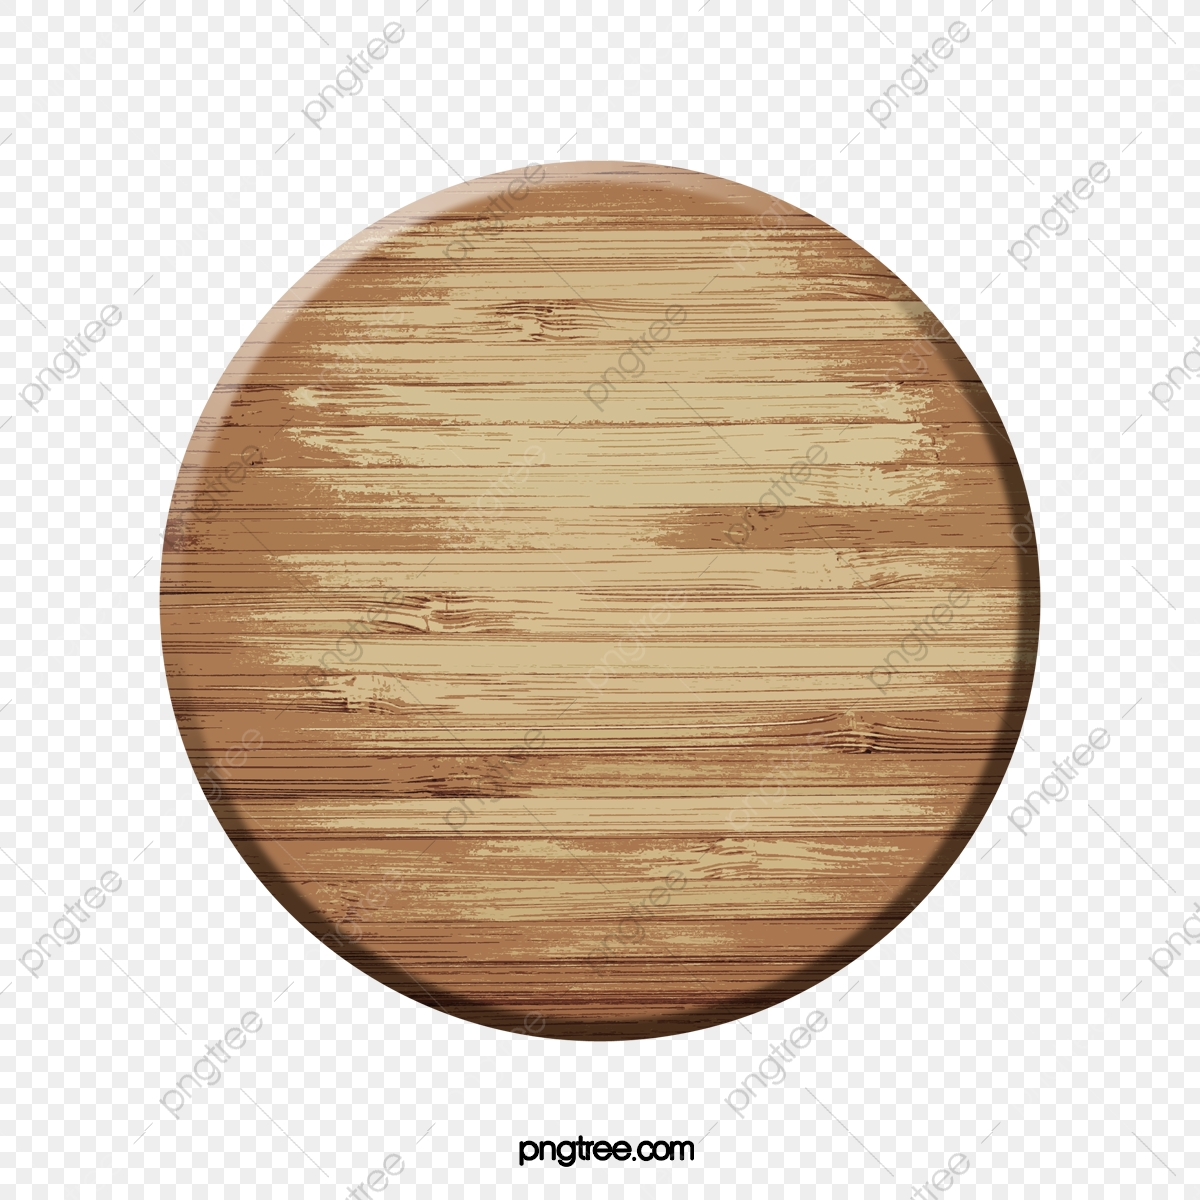 Wood round. Clipart board brown png